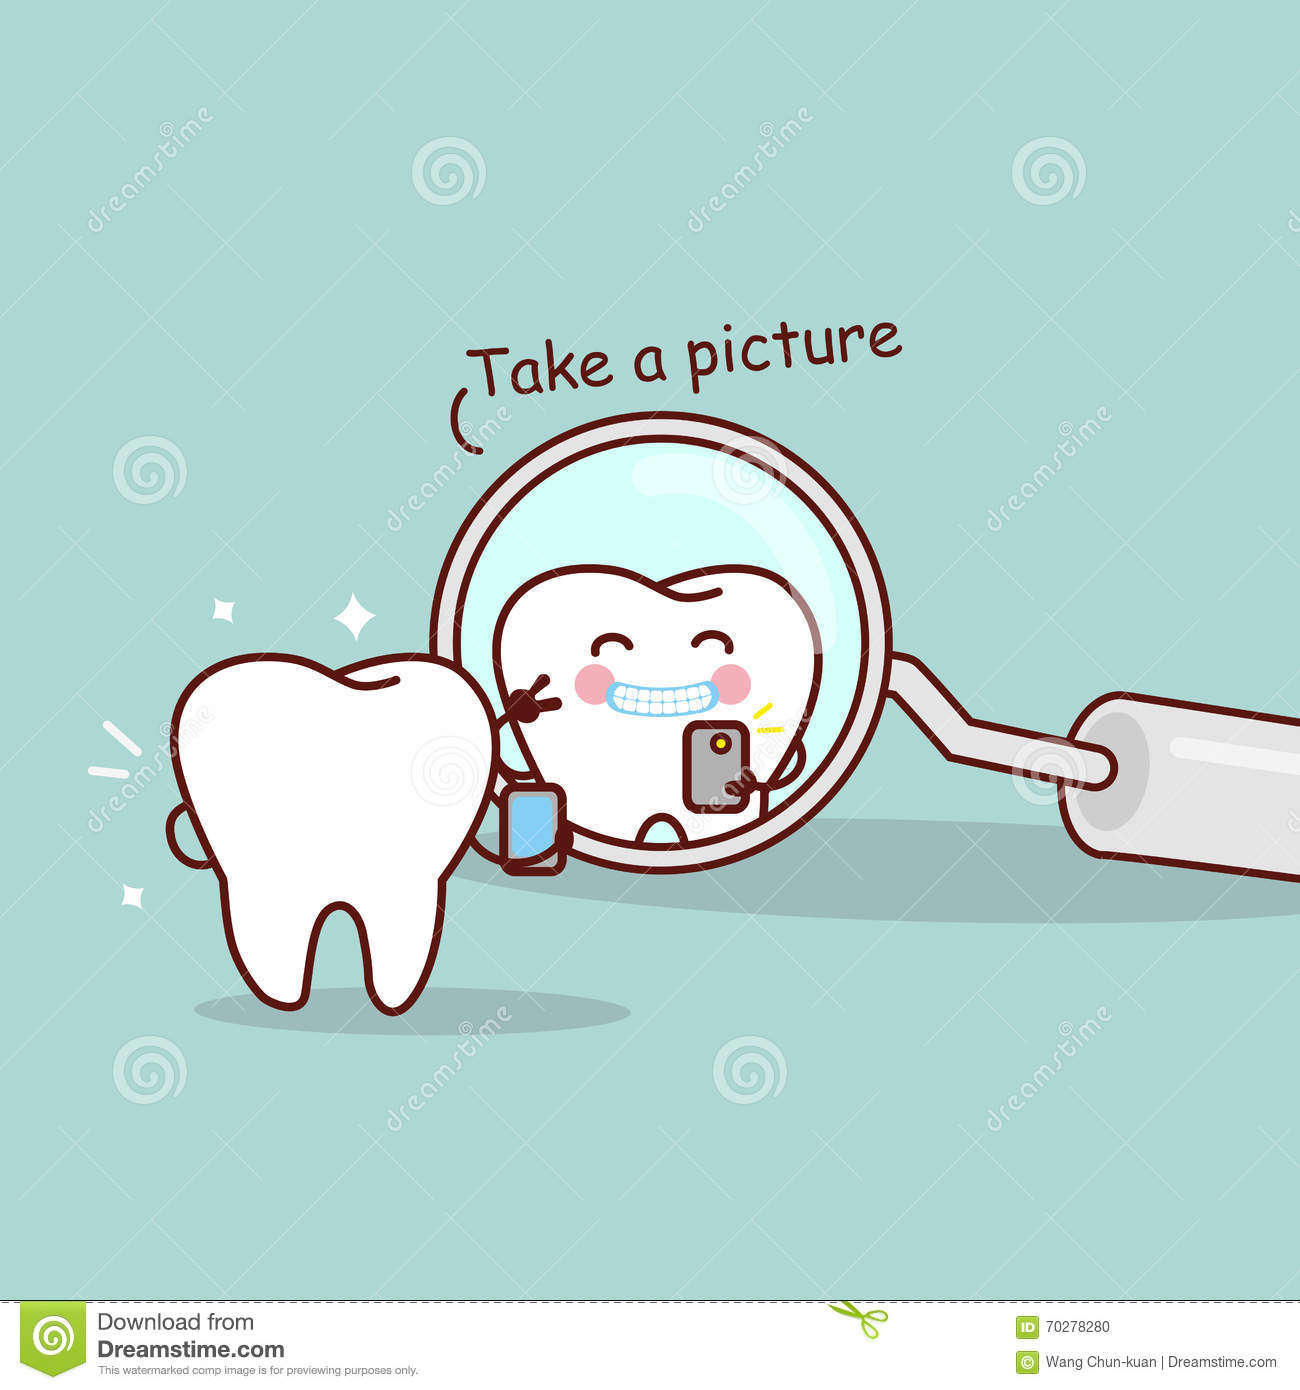 Cartoon Tooth Take A Picture Stock Vector - Image: 70278280